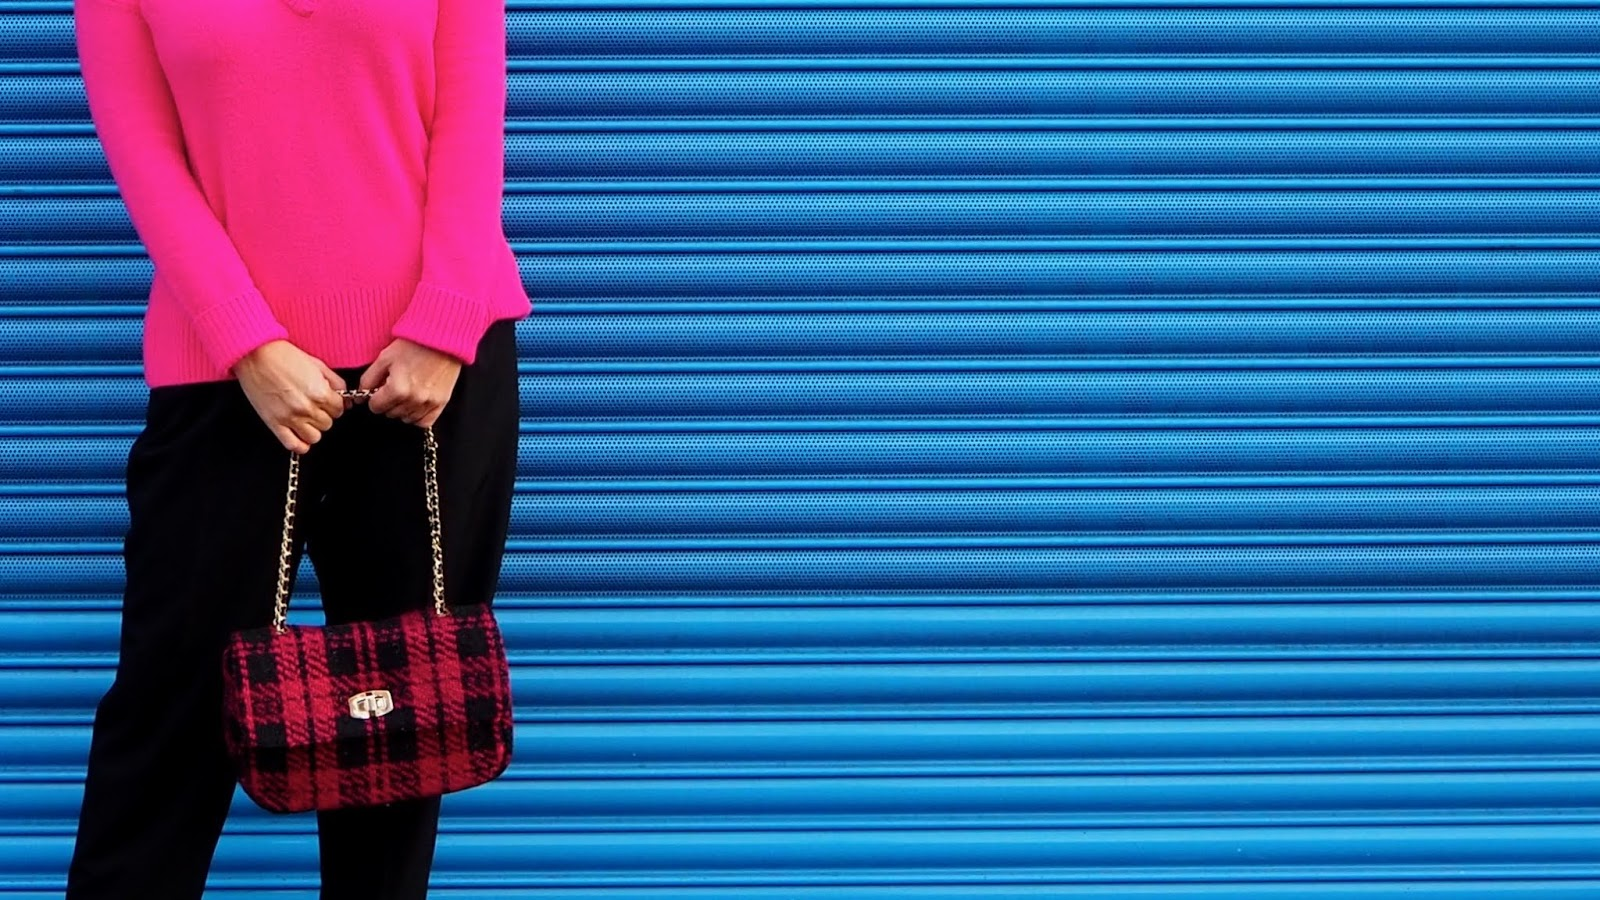 Black & Pink tweed bag with chain shoulder strap